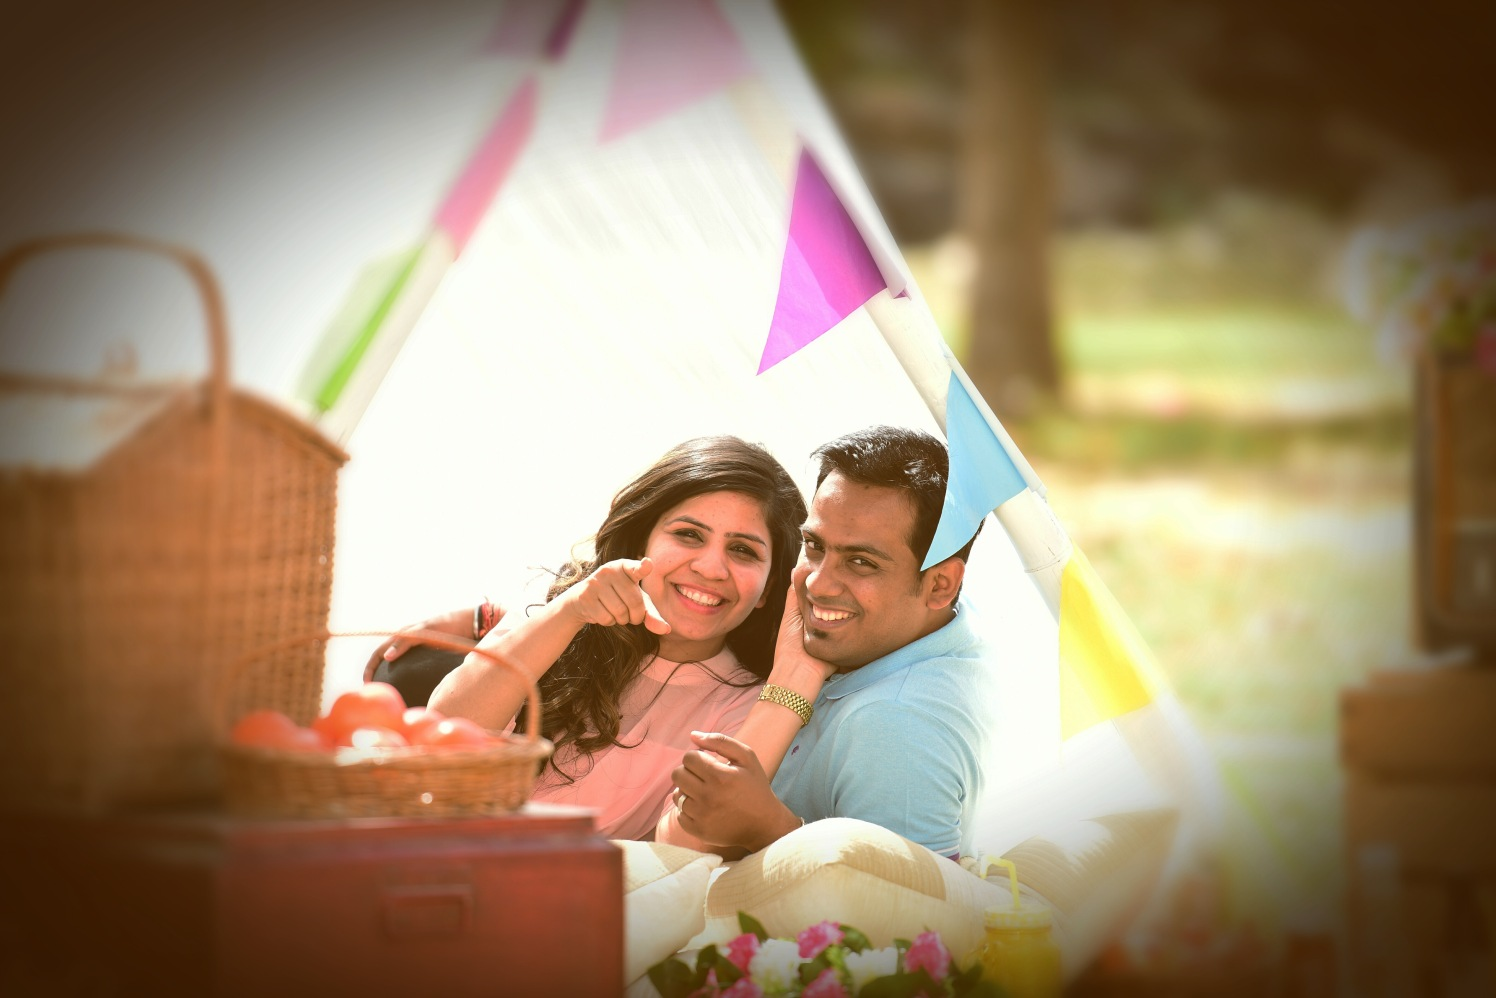 Bride and Groom To-Be on a Picnic Date by Himanshu Chauhan Wedding-photography | Weddings Photos & Ideas